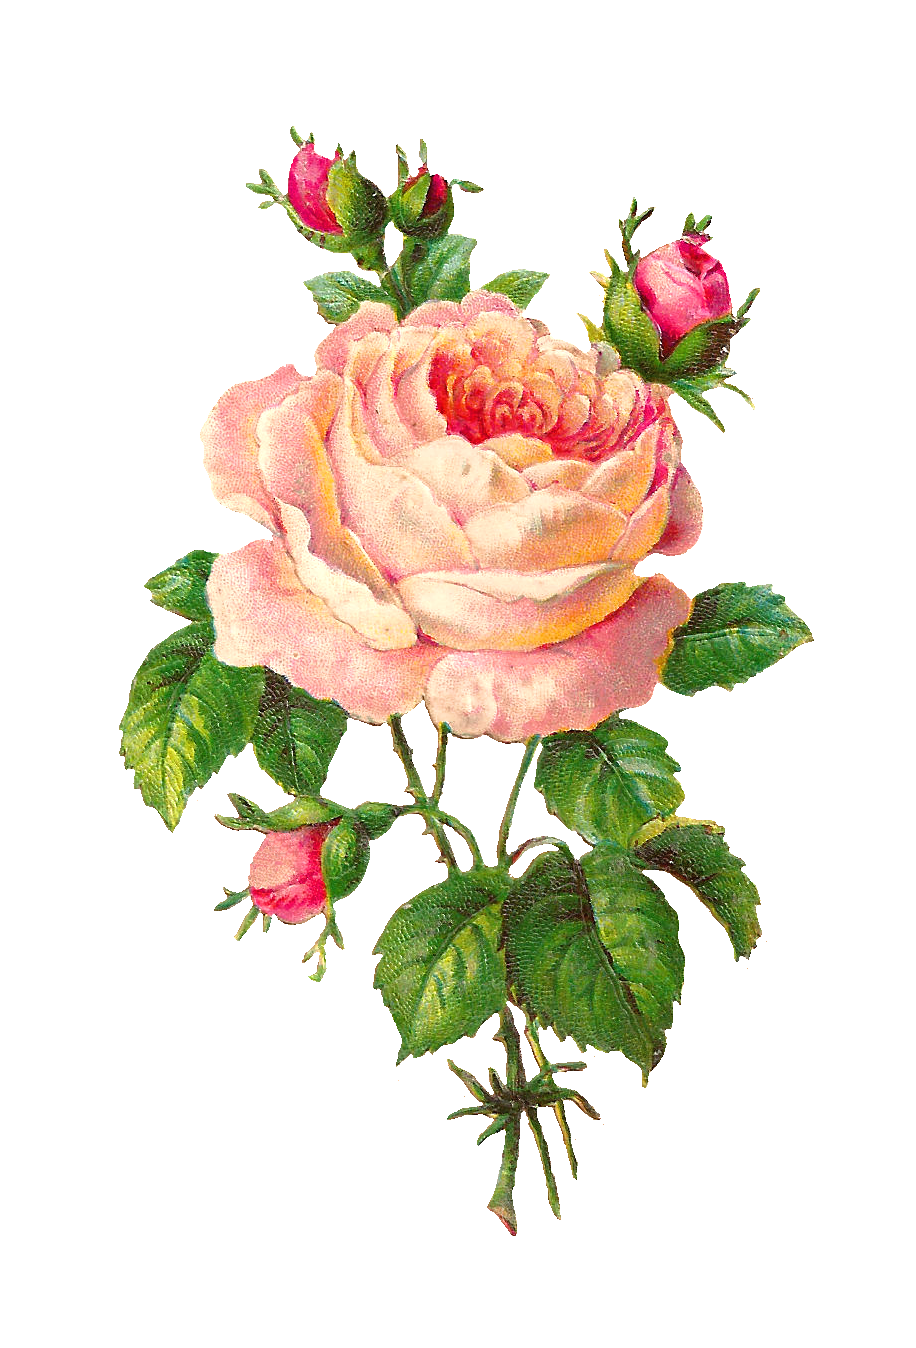 Antique Images: Flower Scrapbooking Pink Rose with Buds ...